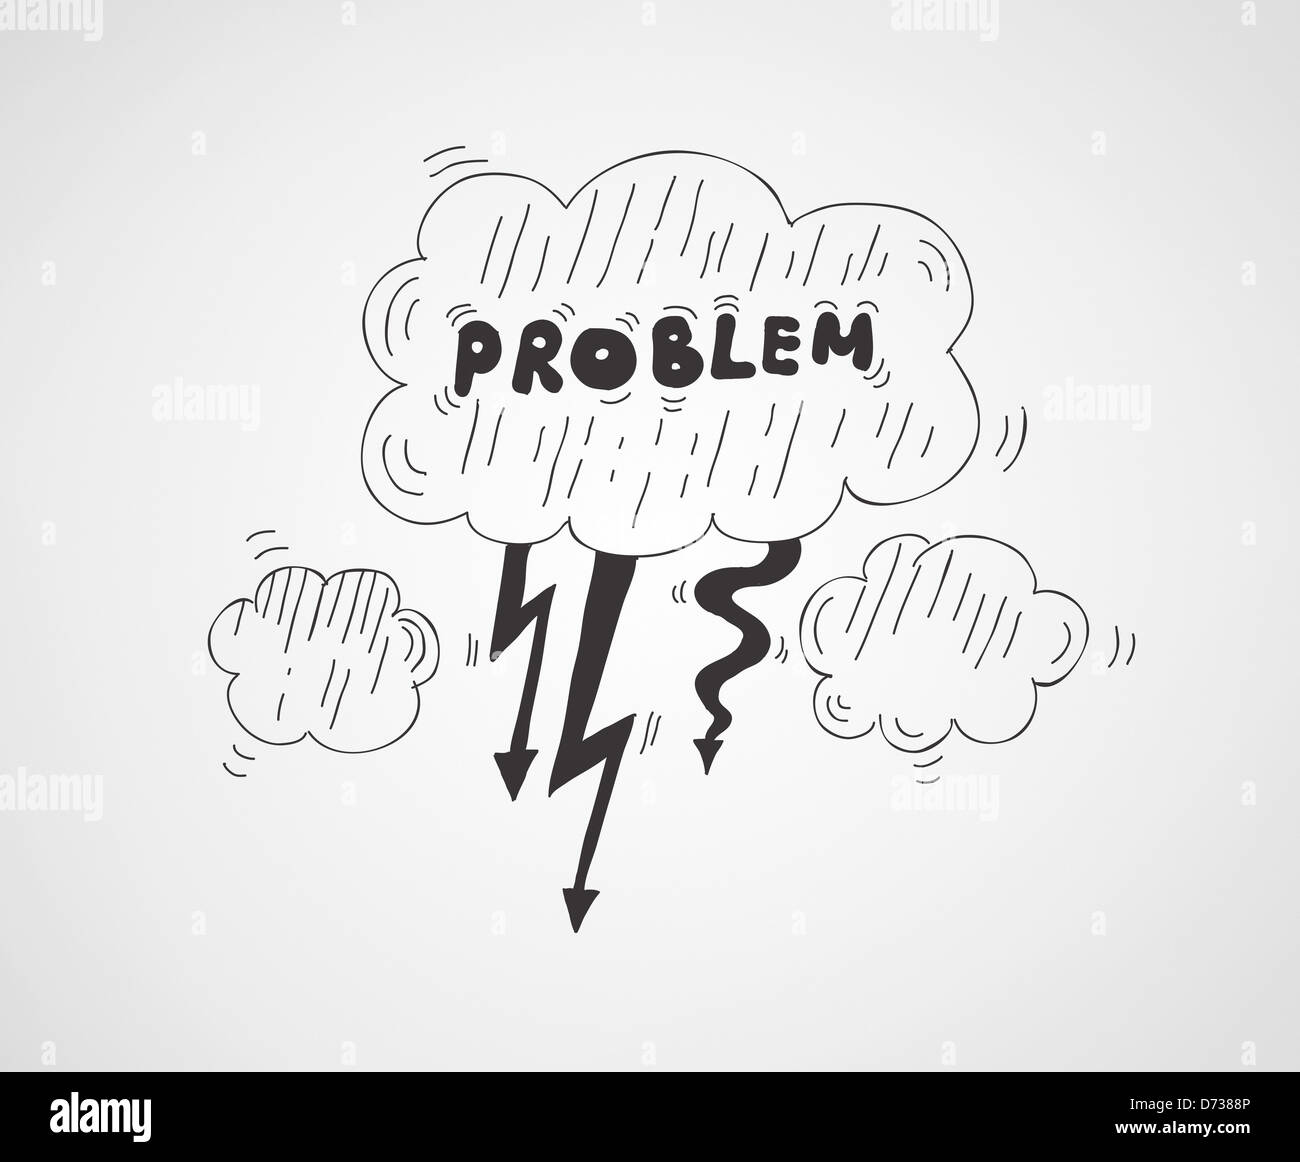 Vector Illustration Concept Of Cloud Symbol With The Problem Word